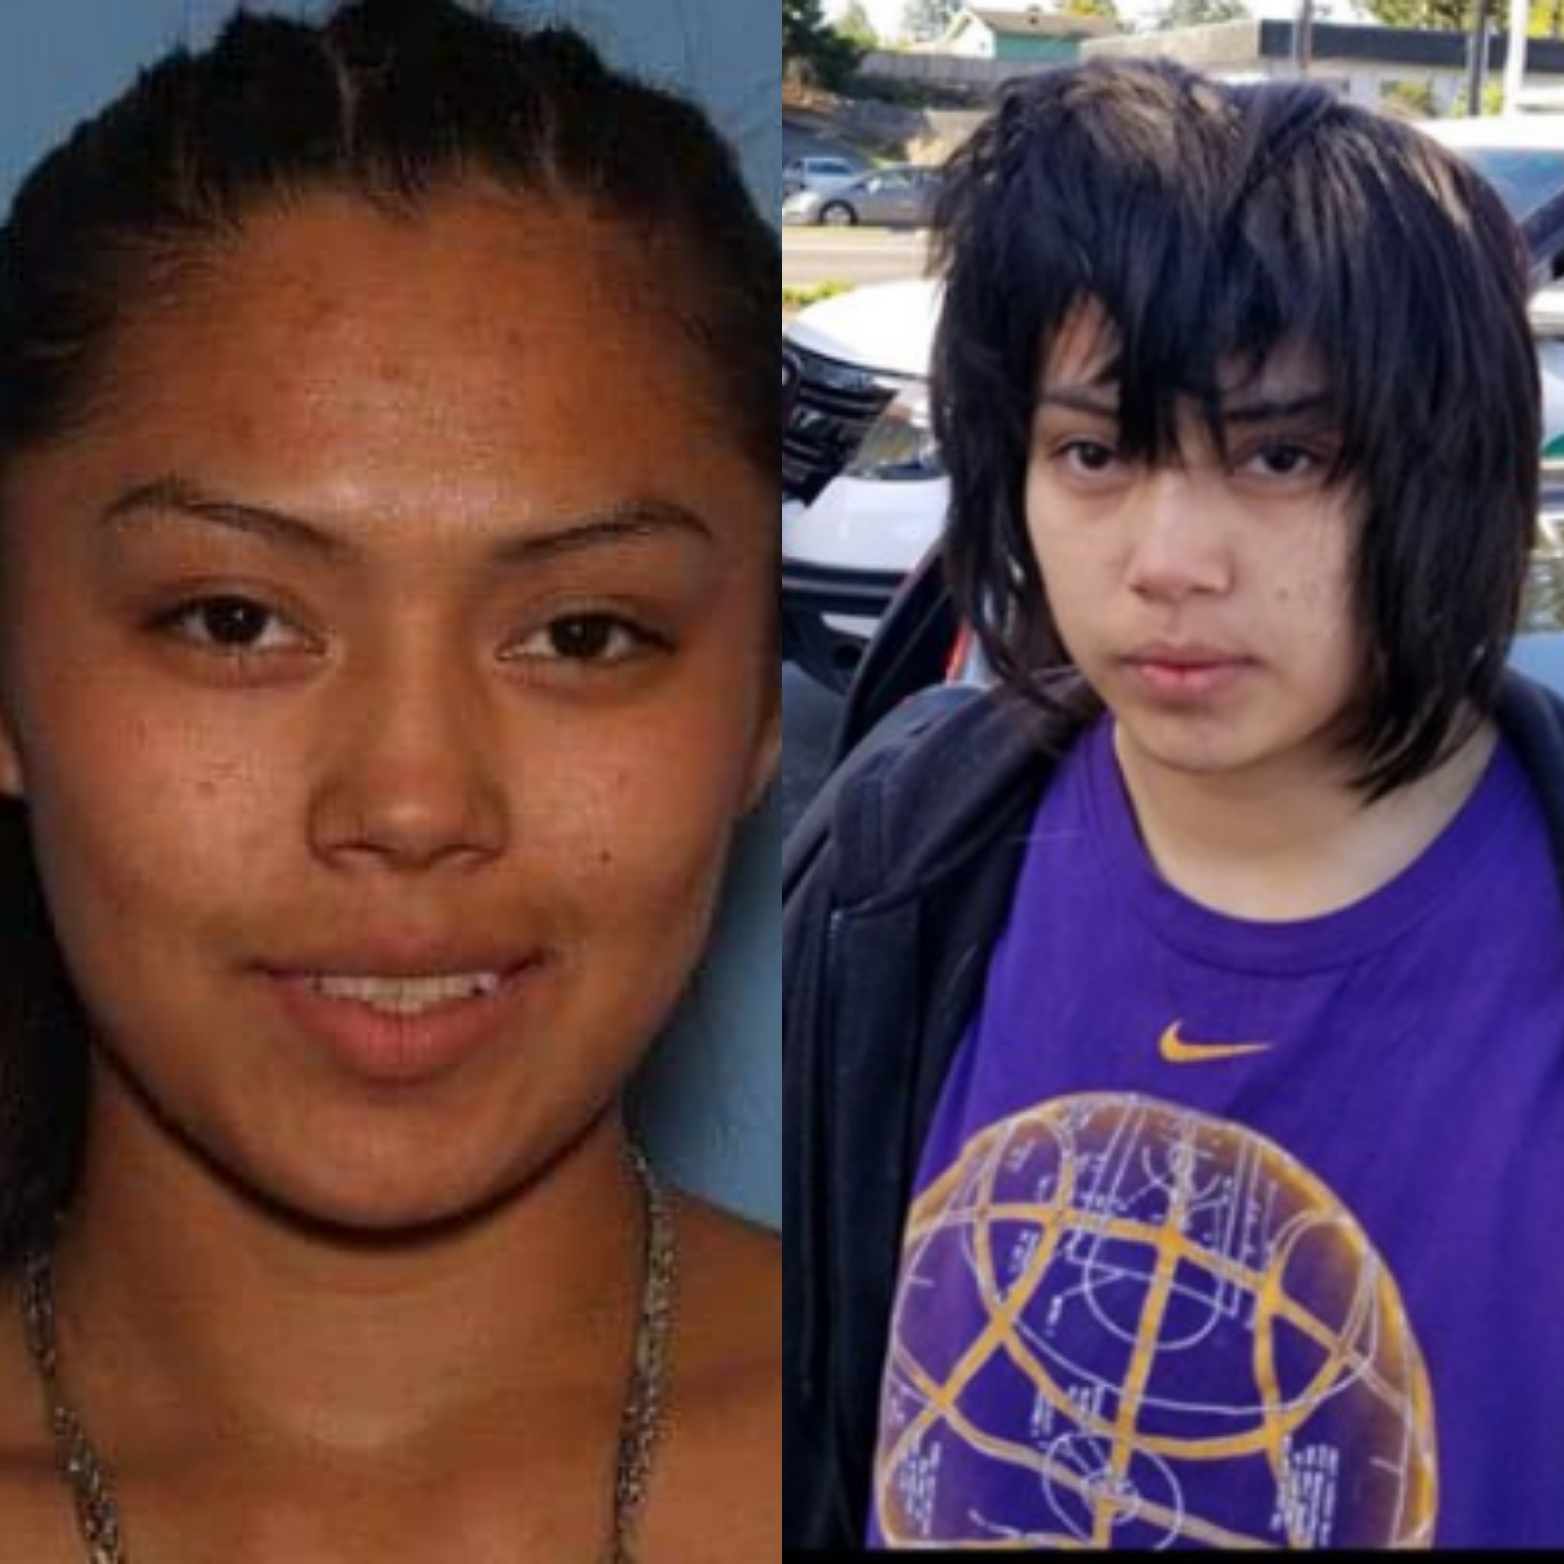 Kaylee nelson-jerry, kaylee mae nelson, kaylee nelson, kaylee mae, kaylee mae nelson-jerry, kaylee mae Nelson Auburn wa, kaylee Nelson-Jerry Auburn wa, kaylee nalson-Jerry missing, has kaylee nelson-jerry been found, mmiw Auburn, mmiwAuburn wa, Muckleshoot,